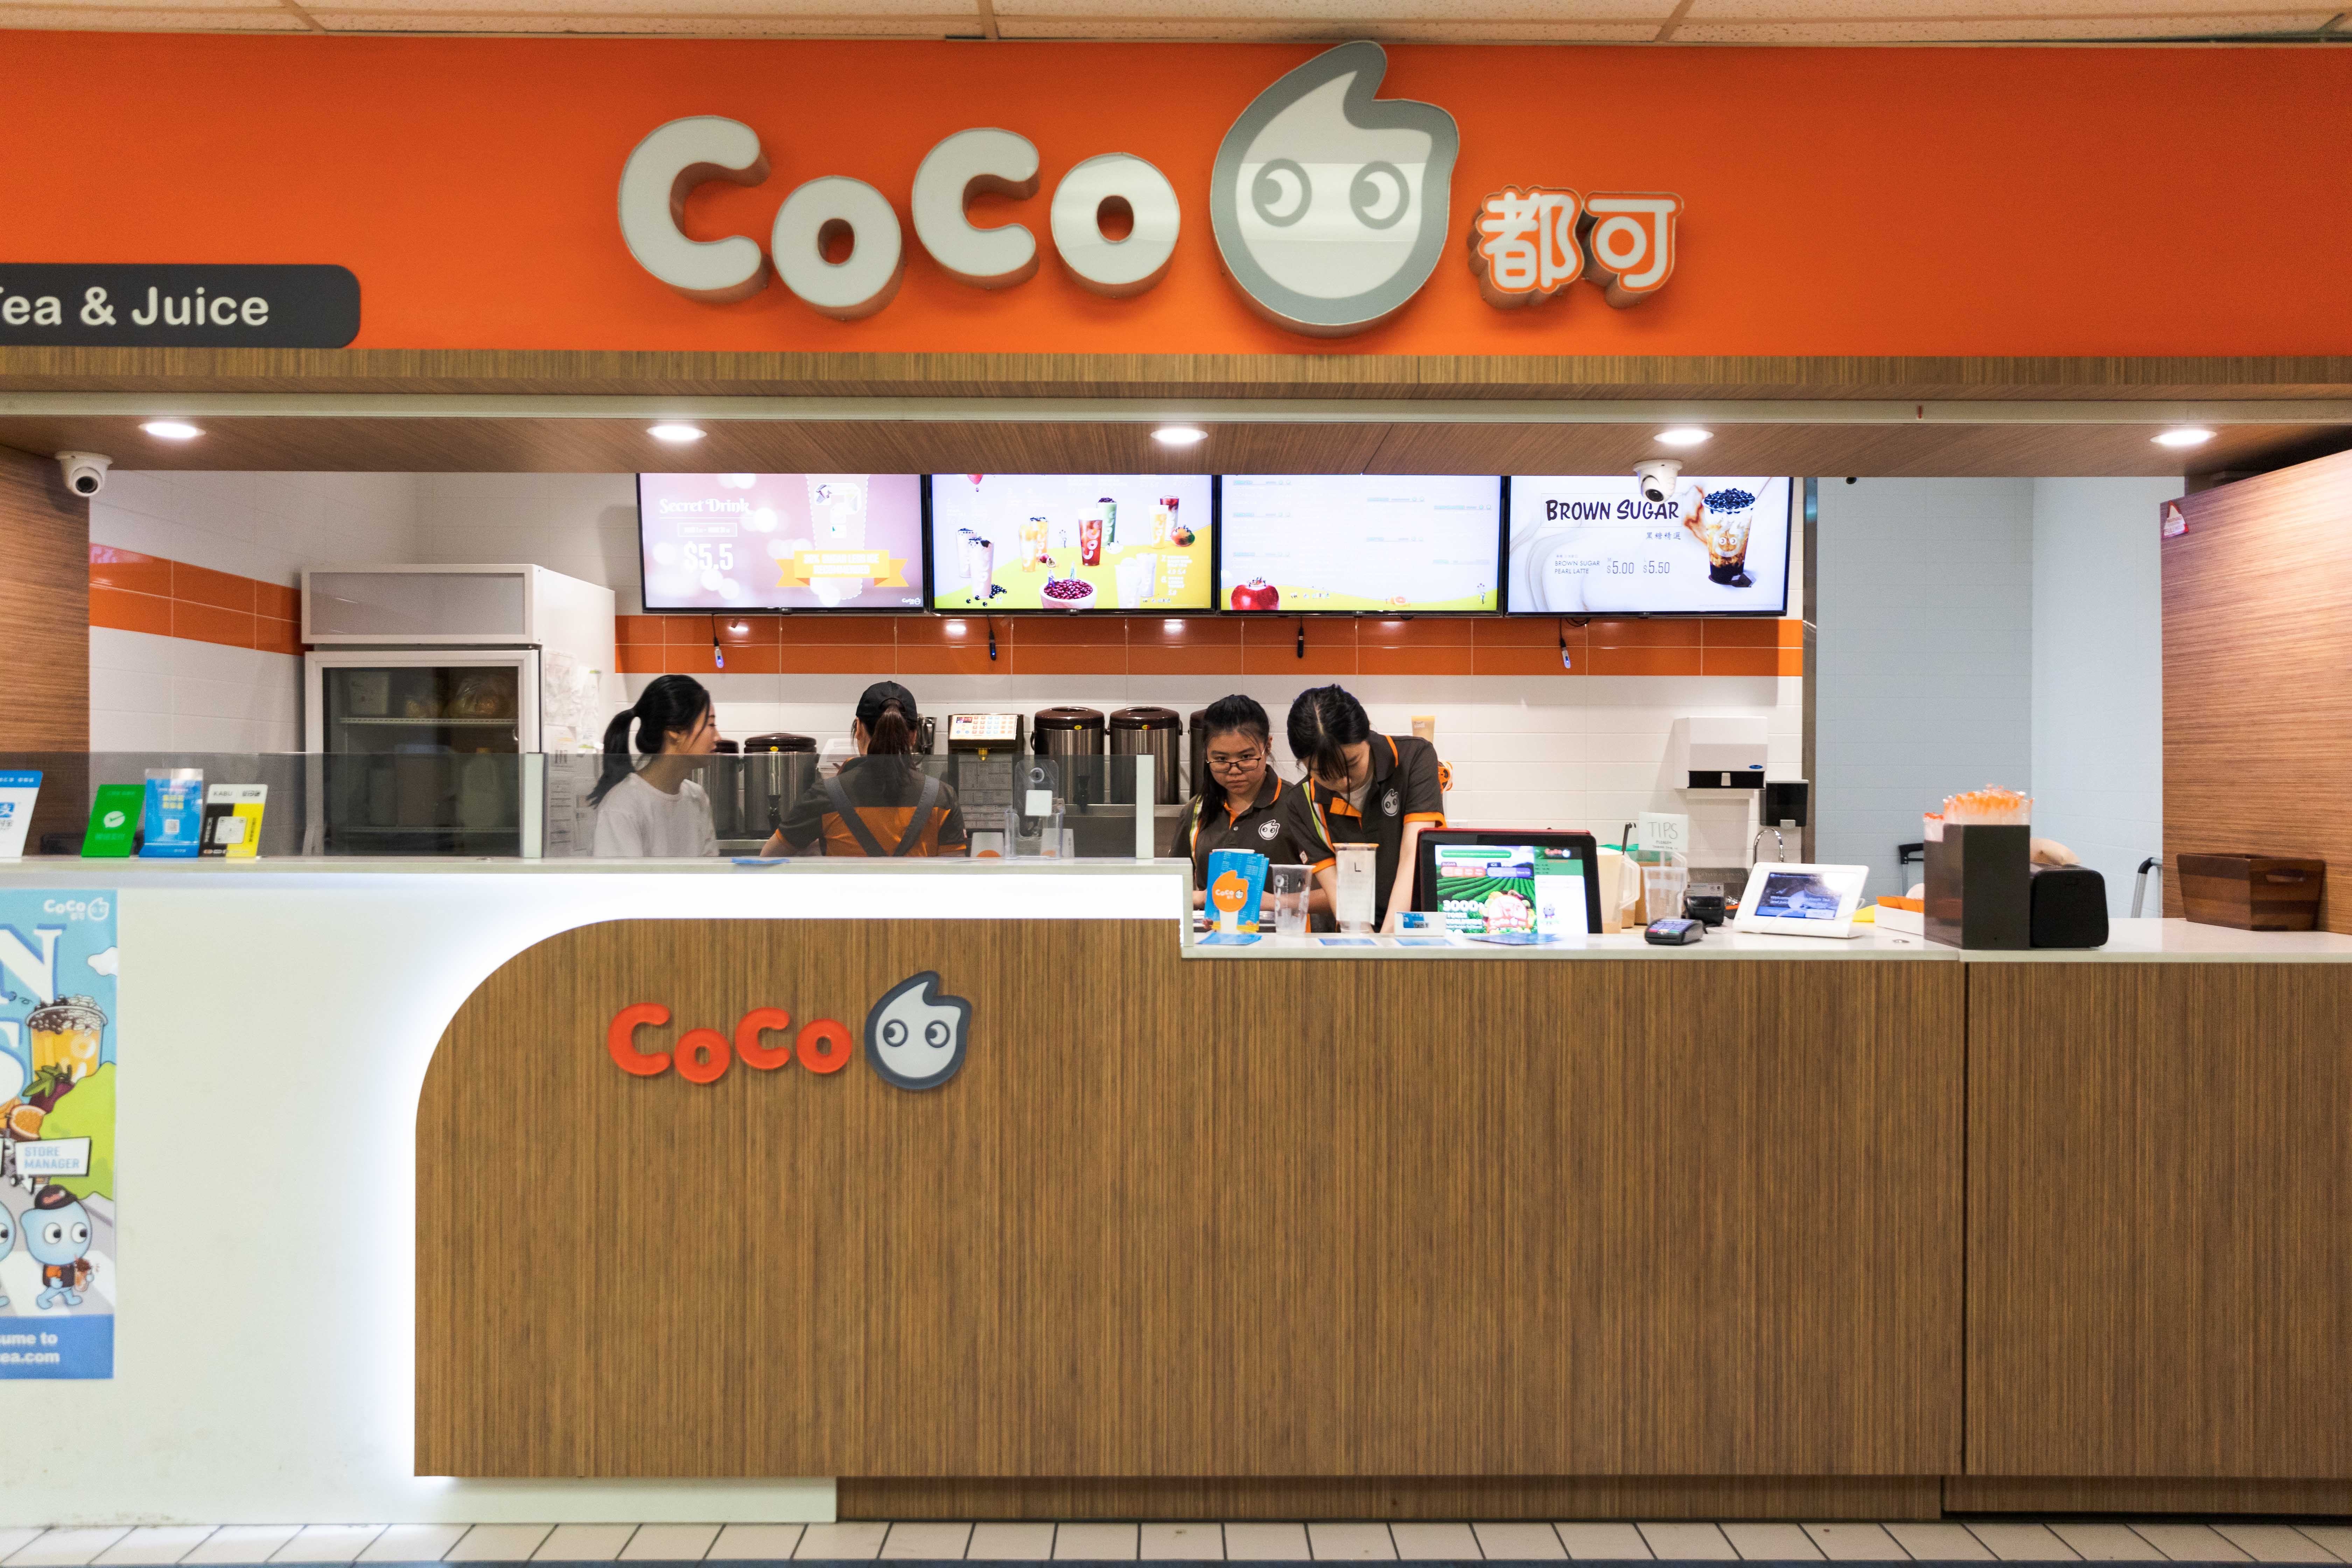 coco storefront